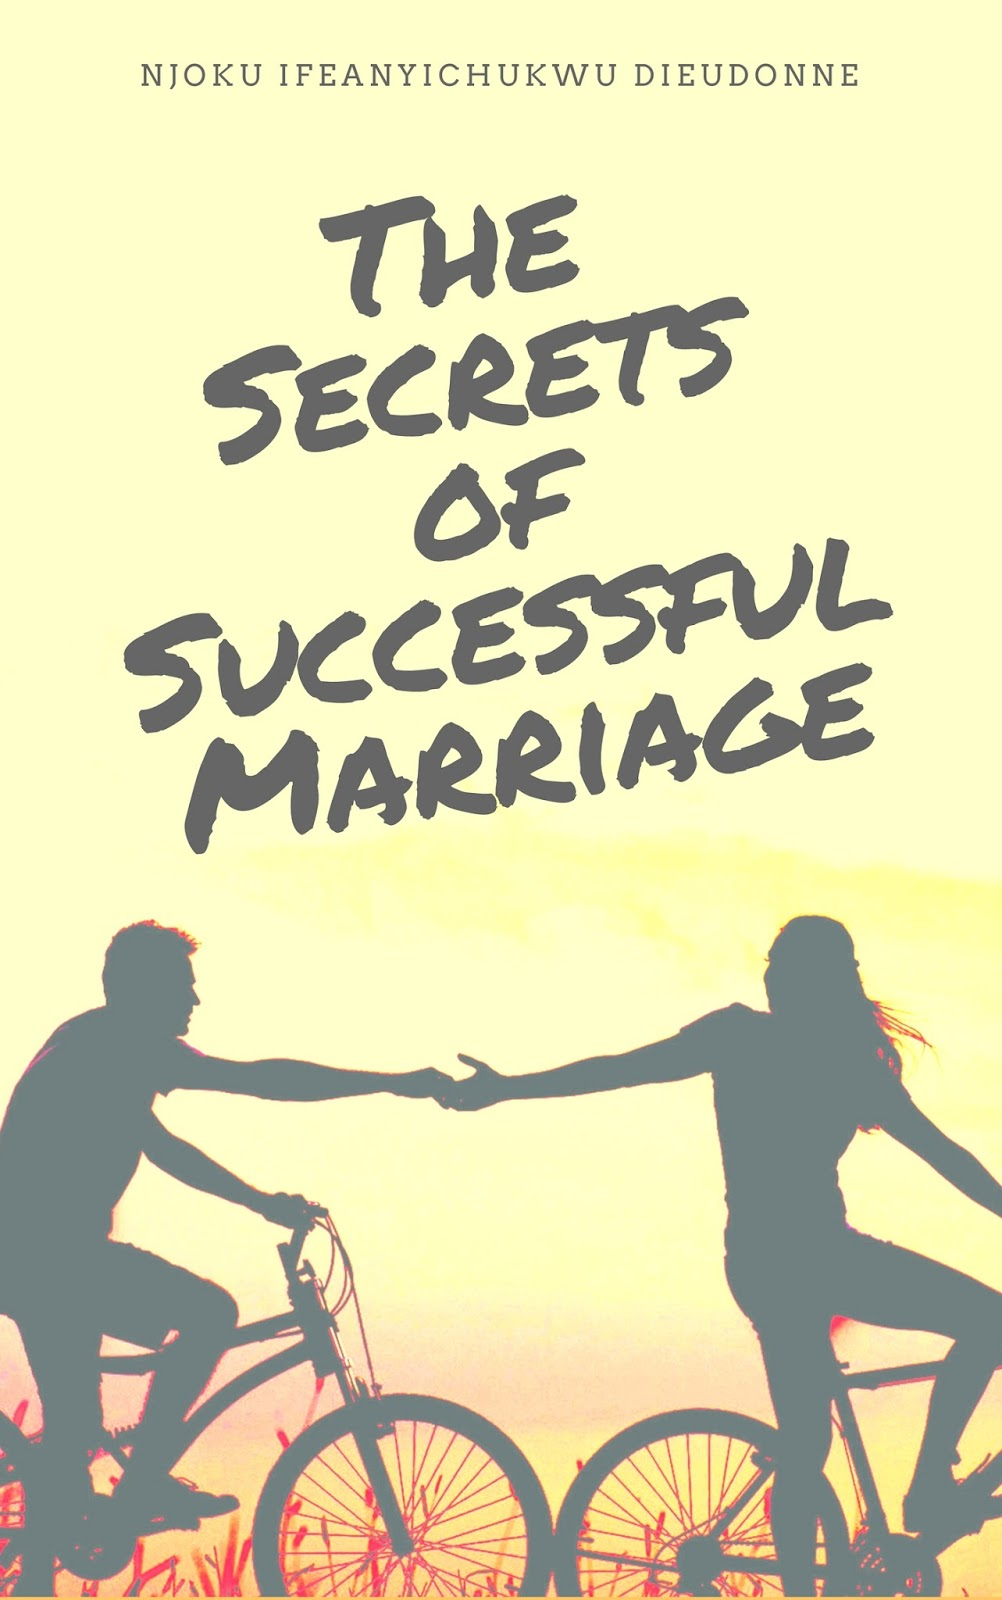 The Secrets of Successful Marriage by Njoku Ifeanyichukwu Dieudonne